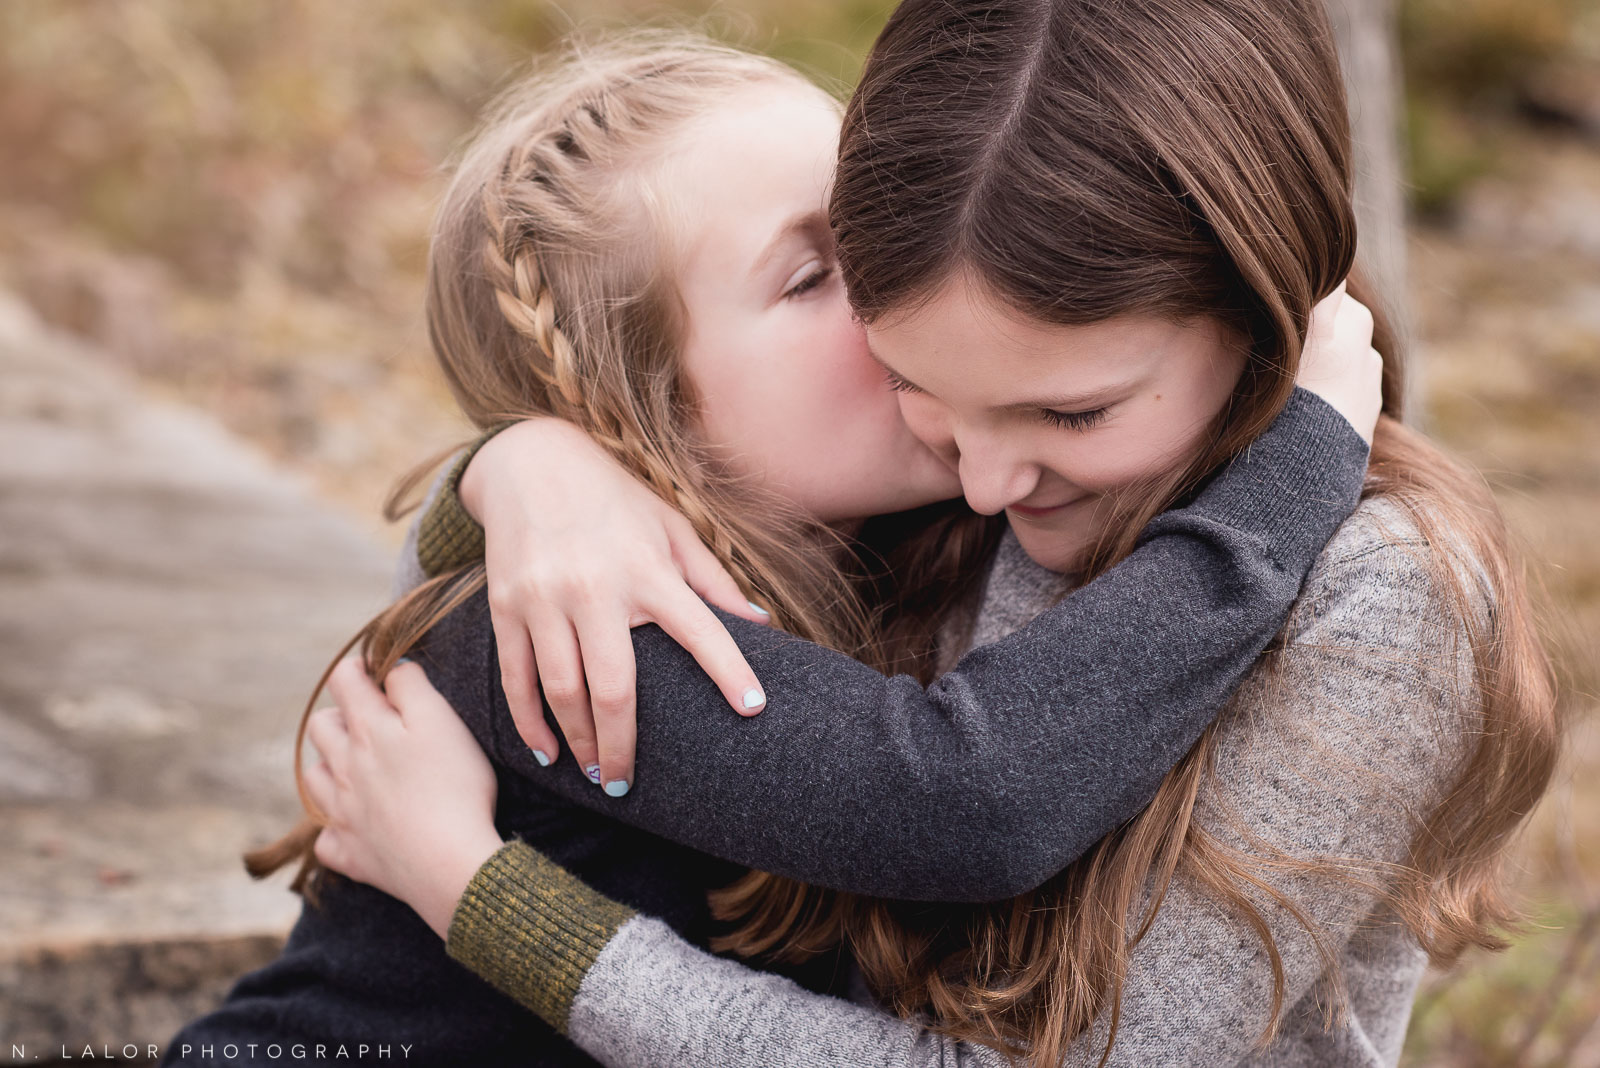 Little sister giving big sis a kiss. Lifestyle family portrait by N. Lalor Photography.